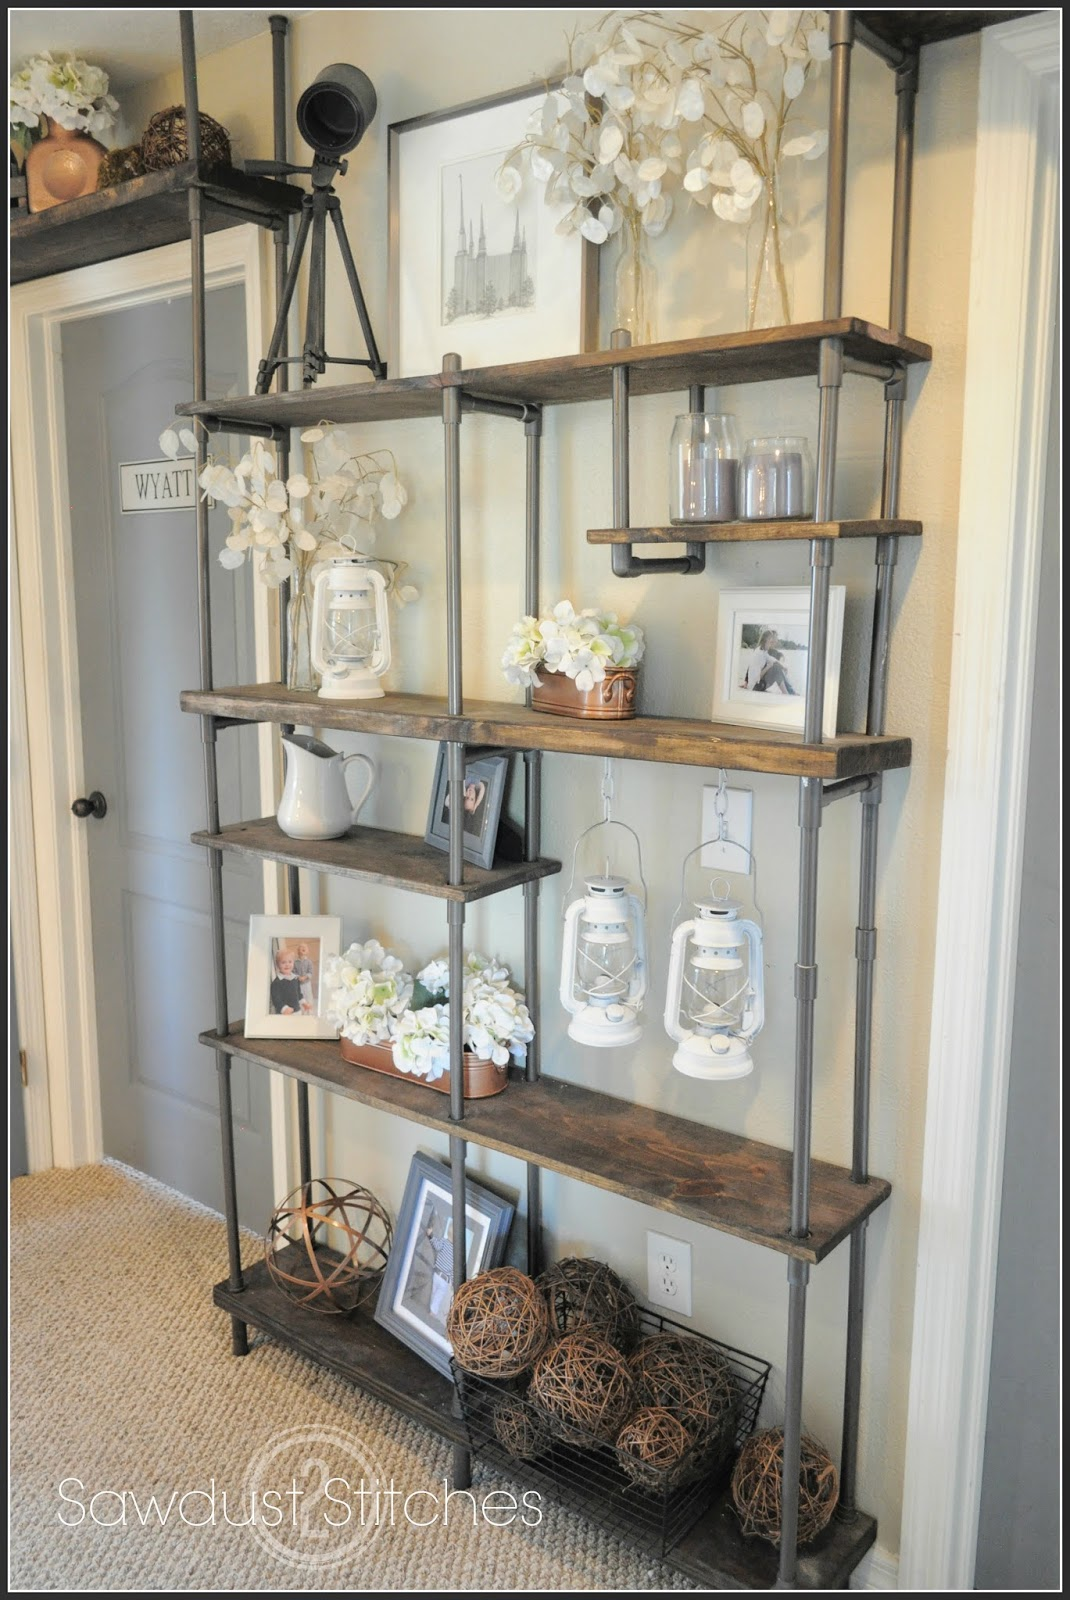 Diy faux industrial shelves uncookie cutter for Diy industrial bookshelf